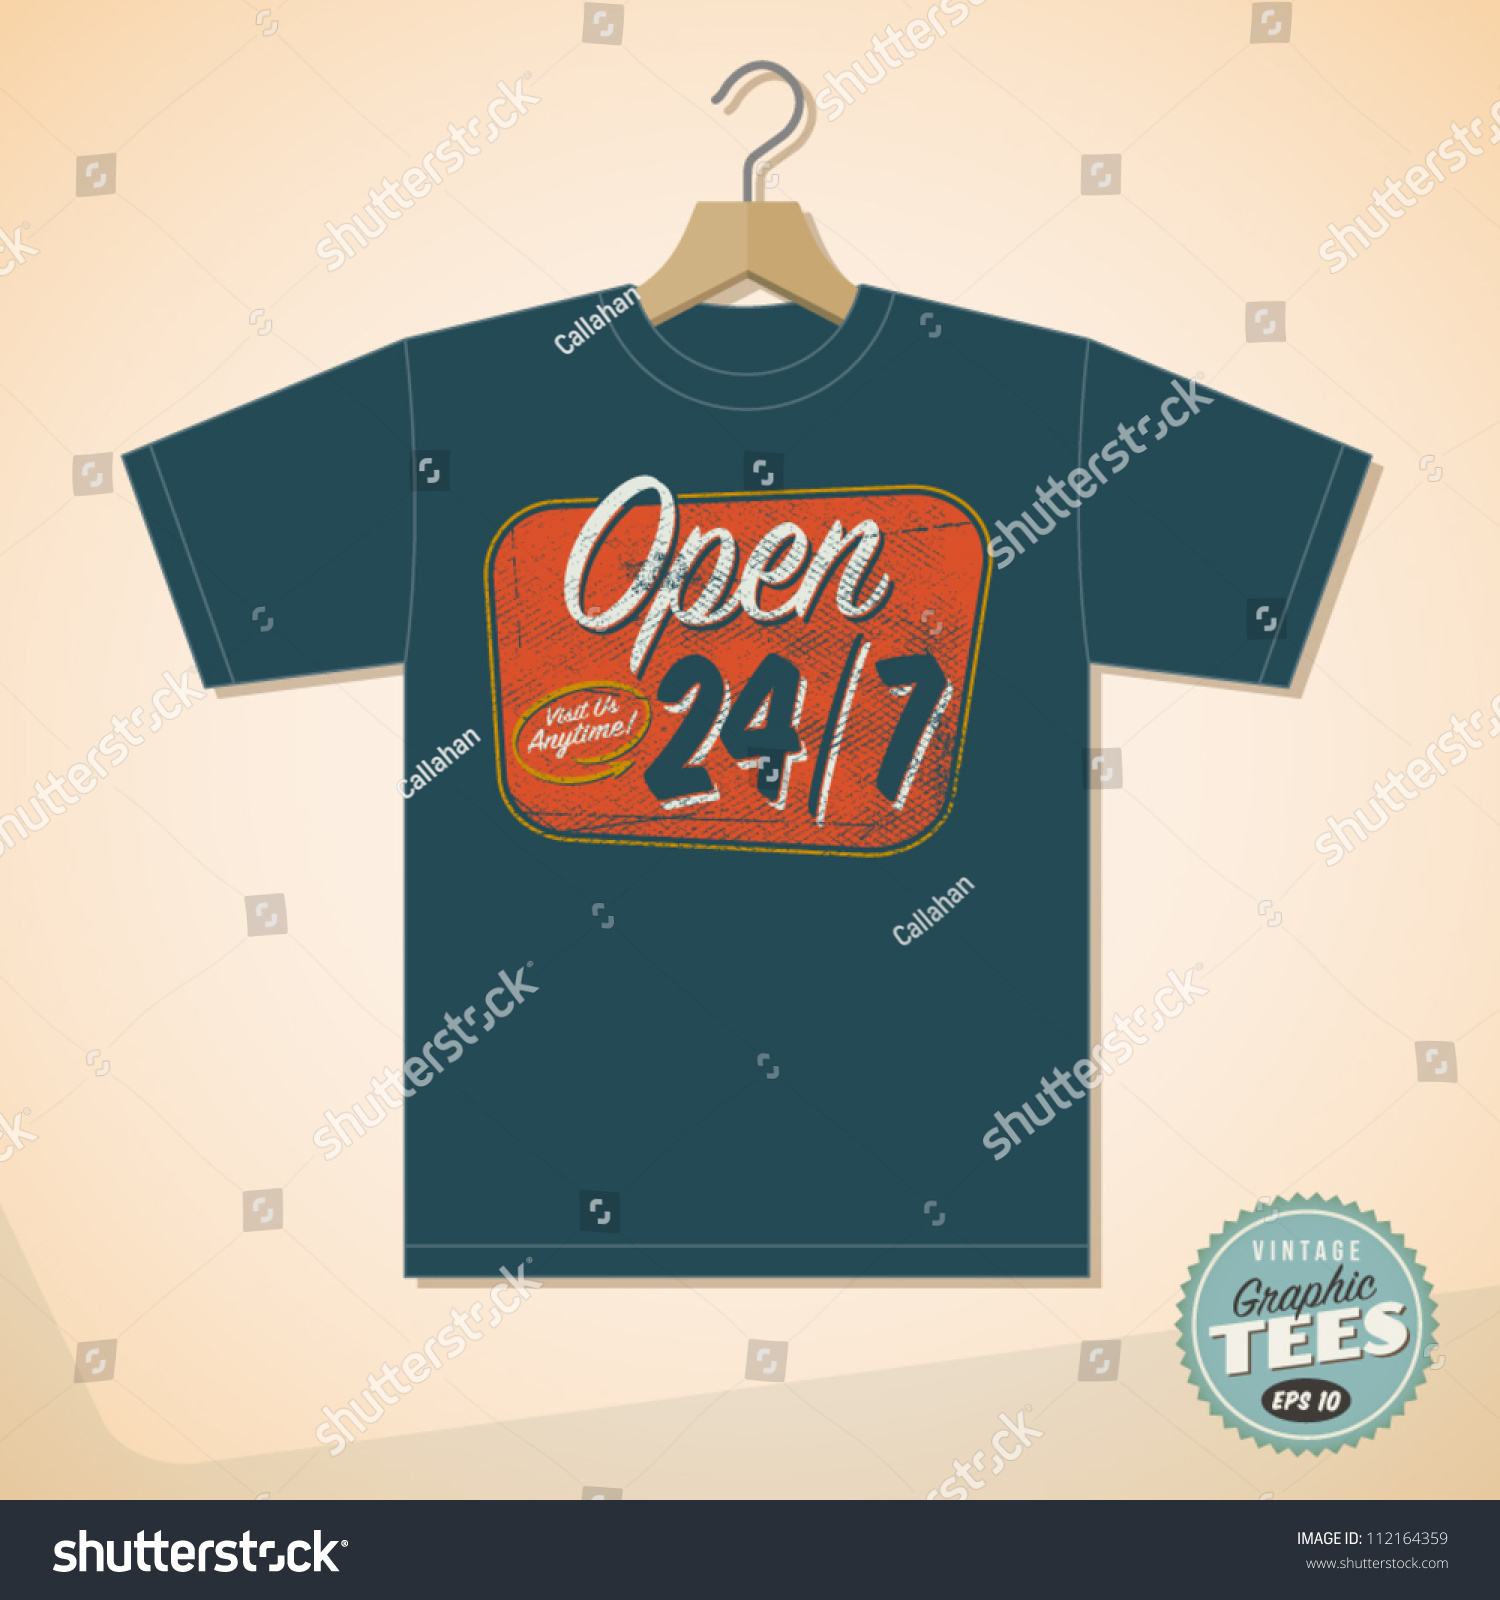 Shirt design eps - Vintage Graphic T Shirt Design Open 24 7 Vector Eps10 Grunge Effects Can Be Easily Removed For A Cleaner Look 112164359 Shutterstock